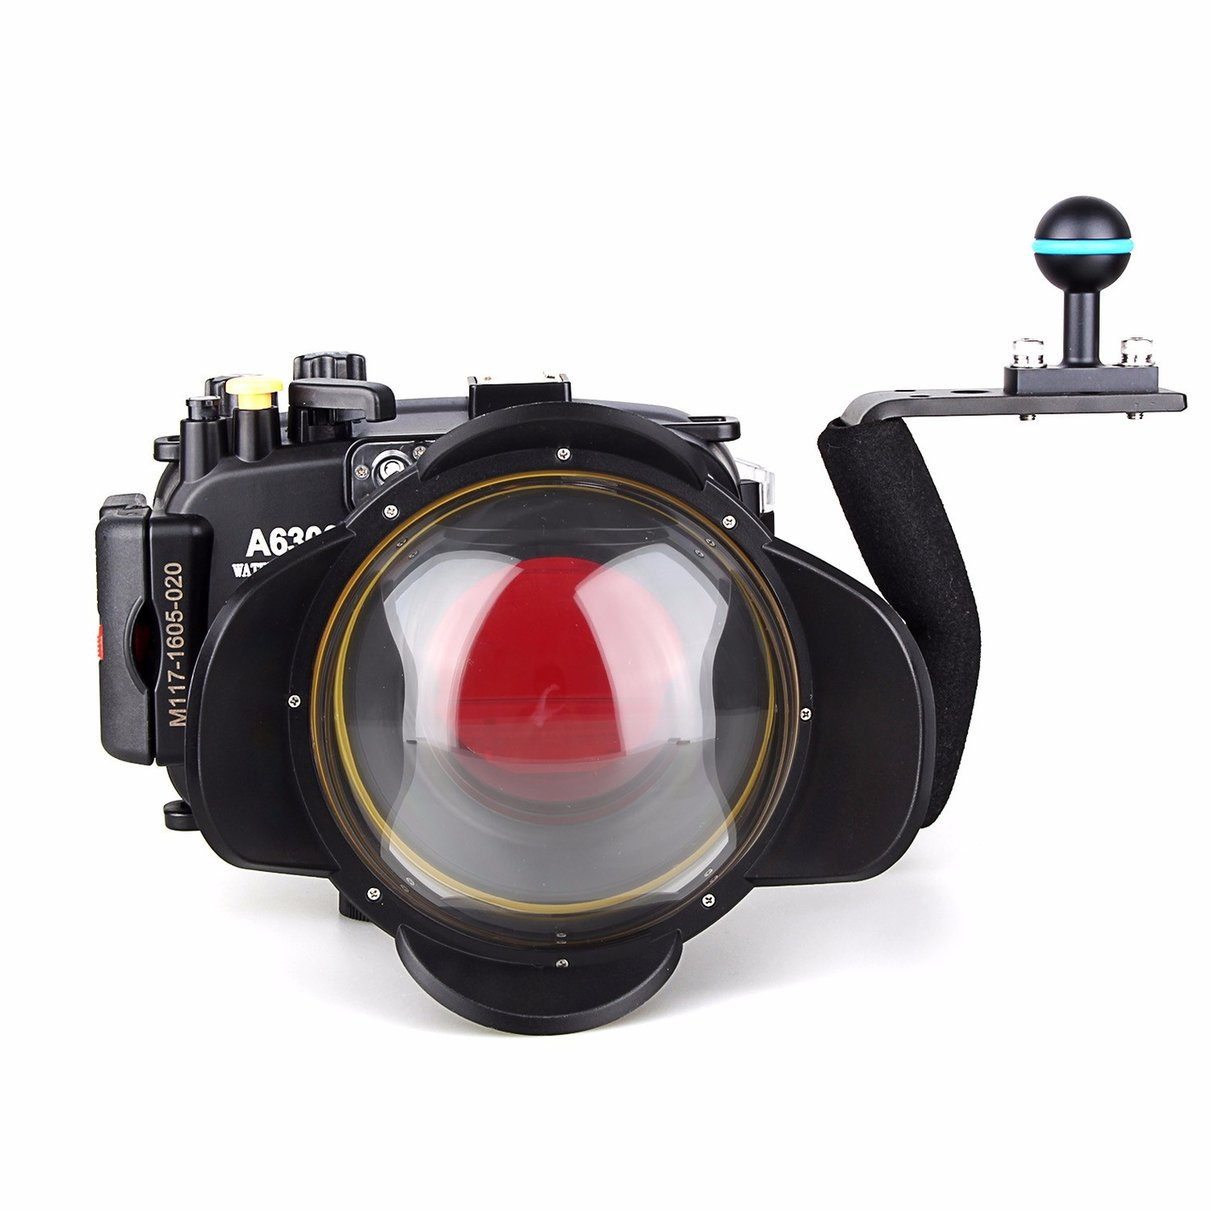 Meikon 40m/130ft Waterproof Underwater Camera Housing Case for A6300 + Aluminium handle + 67mm Fisheye Lens + 67mm Red Filter meikon underwater camera housing for sony a6000 16 50mm 40m 130ft diving handle 67mm red diving filter